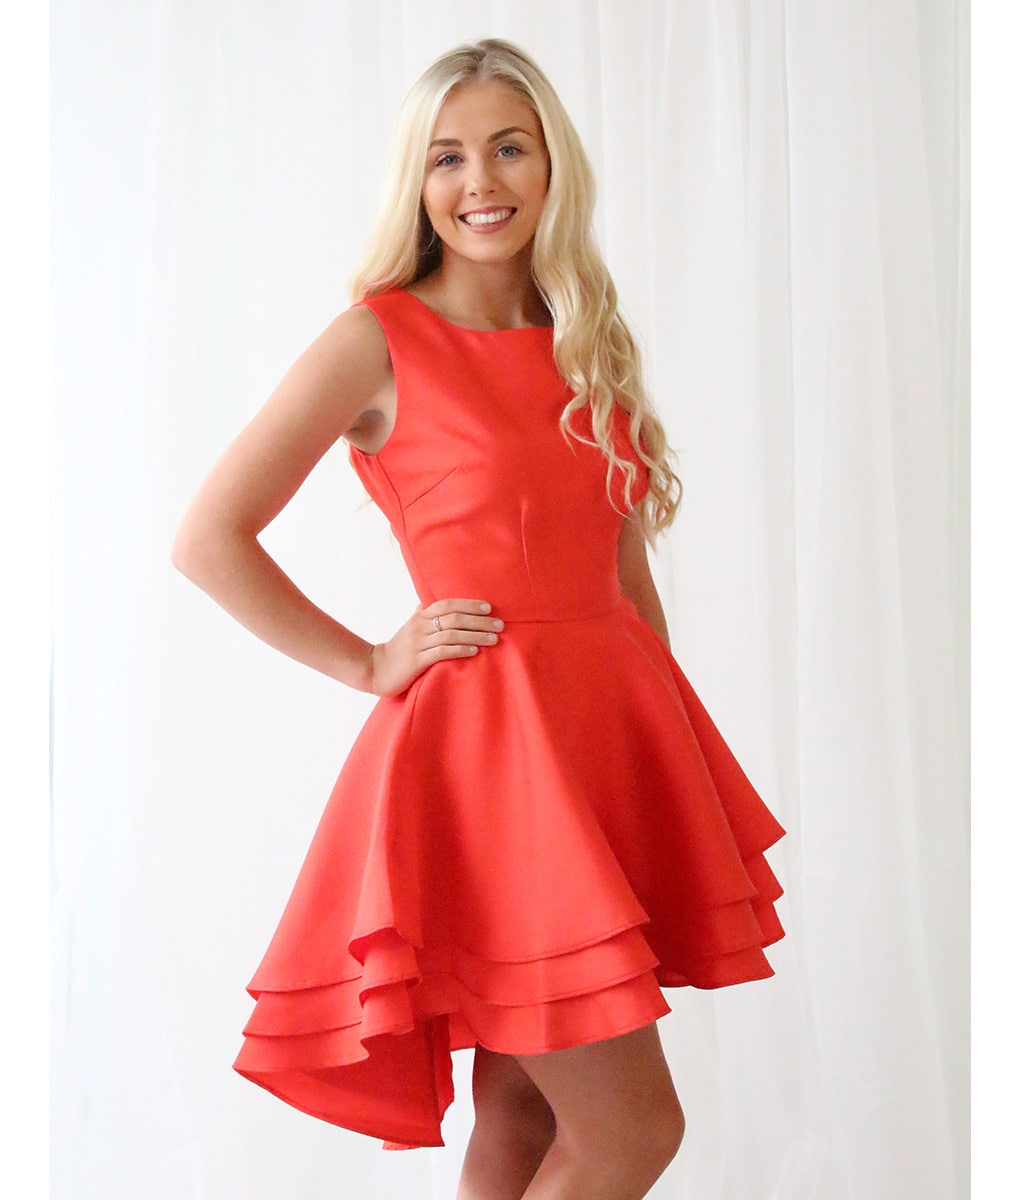 Alila-Bright-red-ruffle-dress-City-Goddess